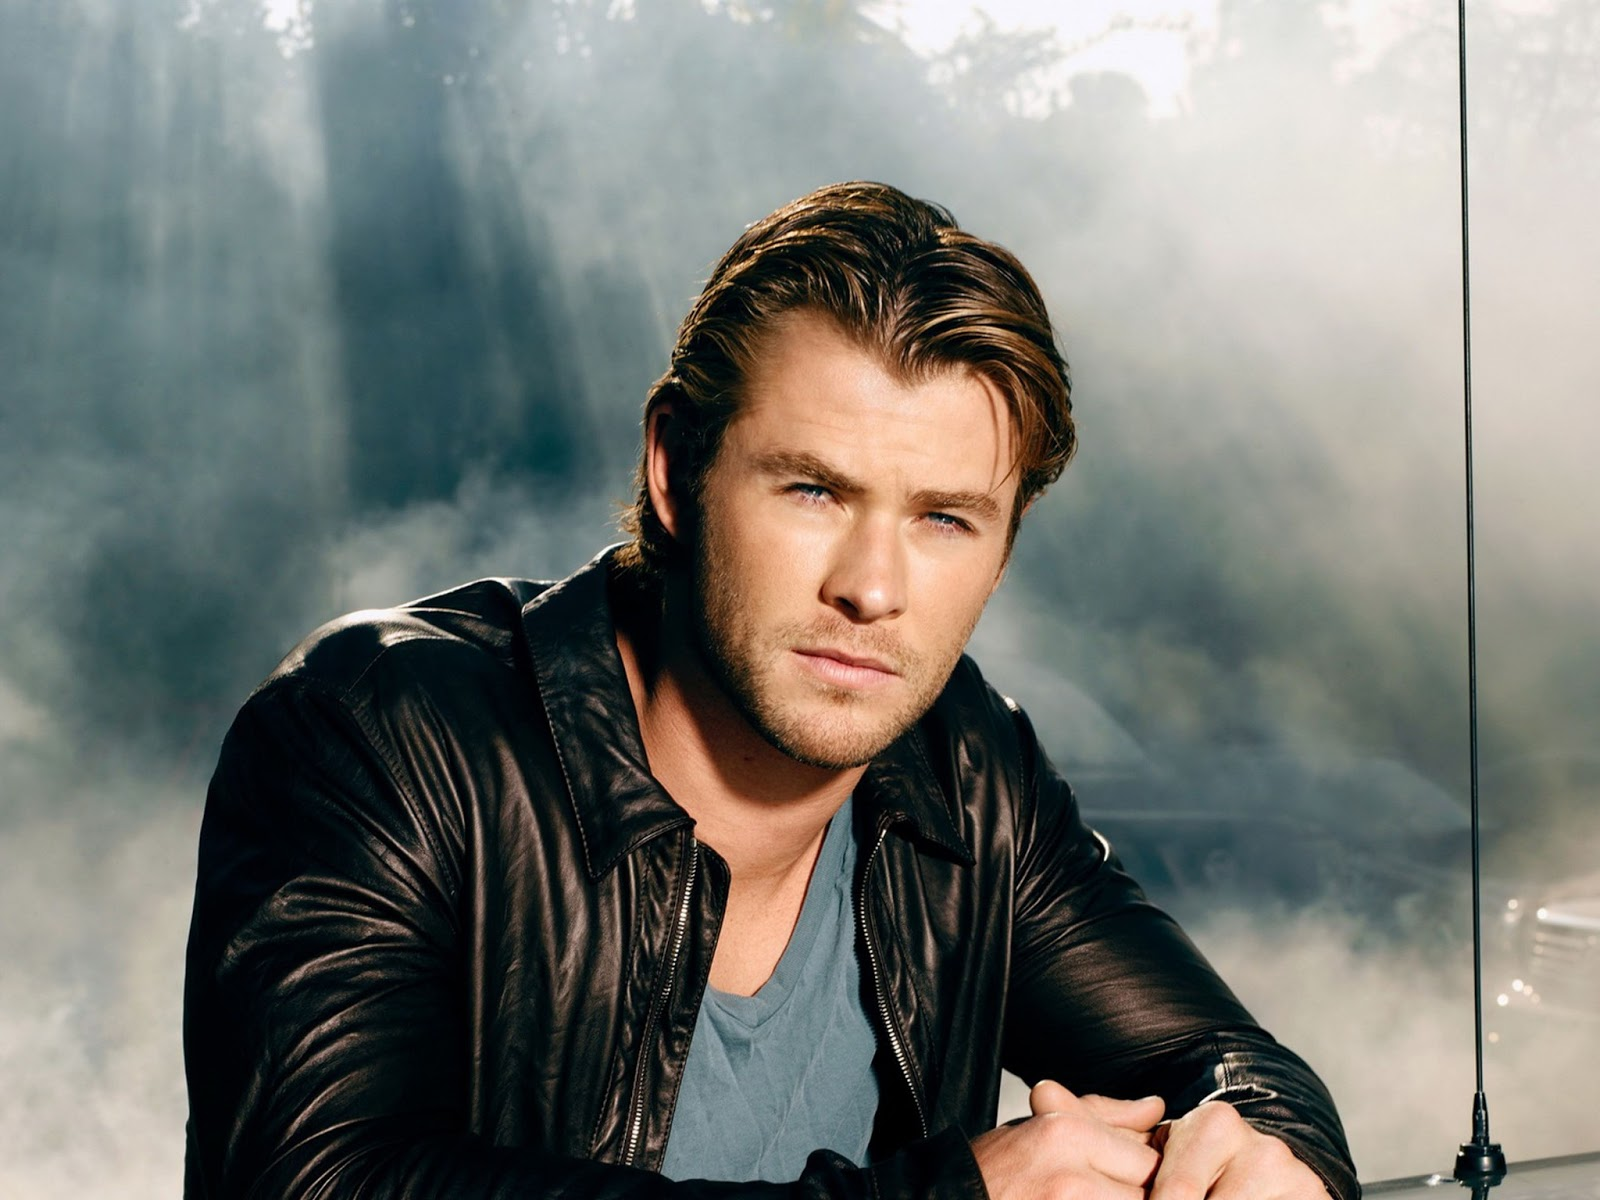 http://4.bp.blogspot.com/-zlzfmgQv82Q/UUrA6O3-Y8I/AAAAAAAAEJ0/5hKx6Eiwezk/s1600/Chris+Hemsworth+hd+Wallpapers+2013_5.jpg